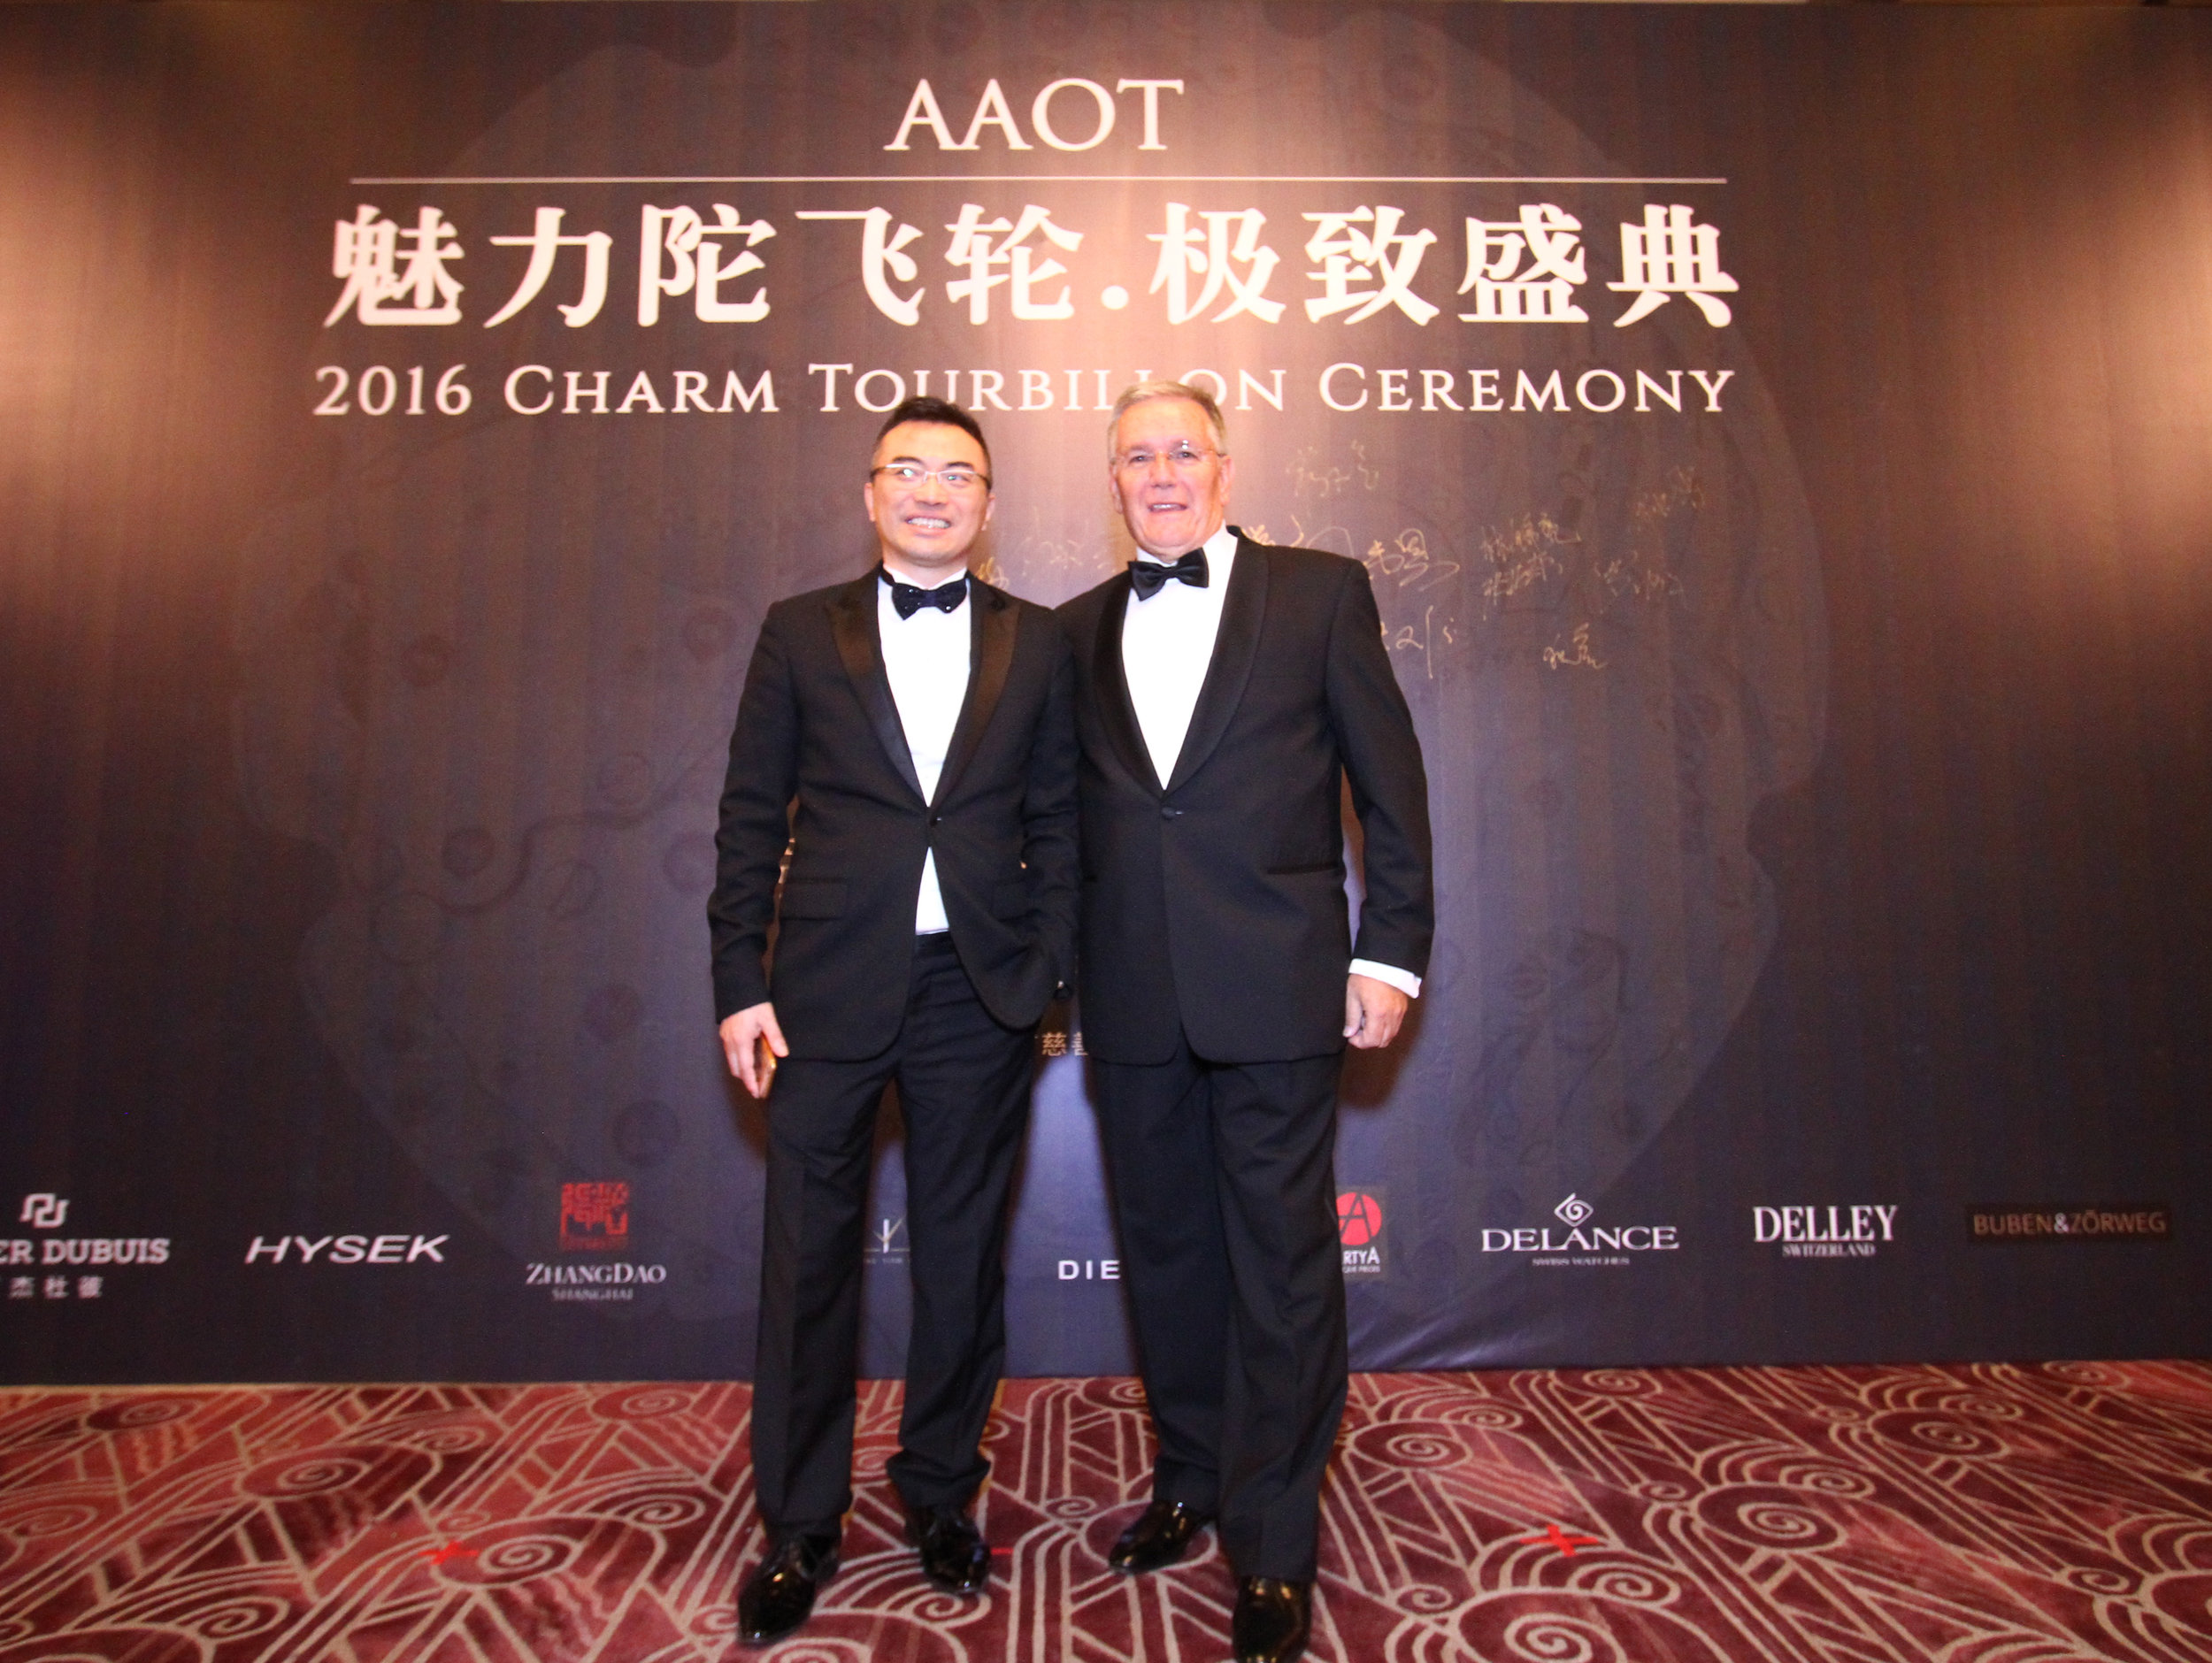 Opening ceremony Art of TOURBILLON 2016 Shanghai China with my Chinese Business Cooperation Partner, Mr. Aguan, President from Supervvip in Shanghai